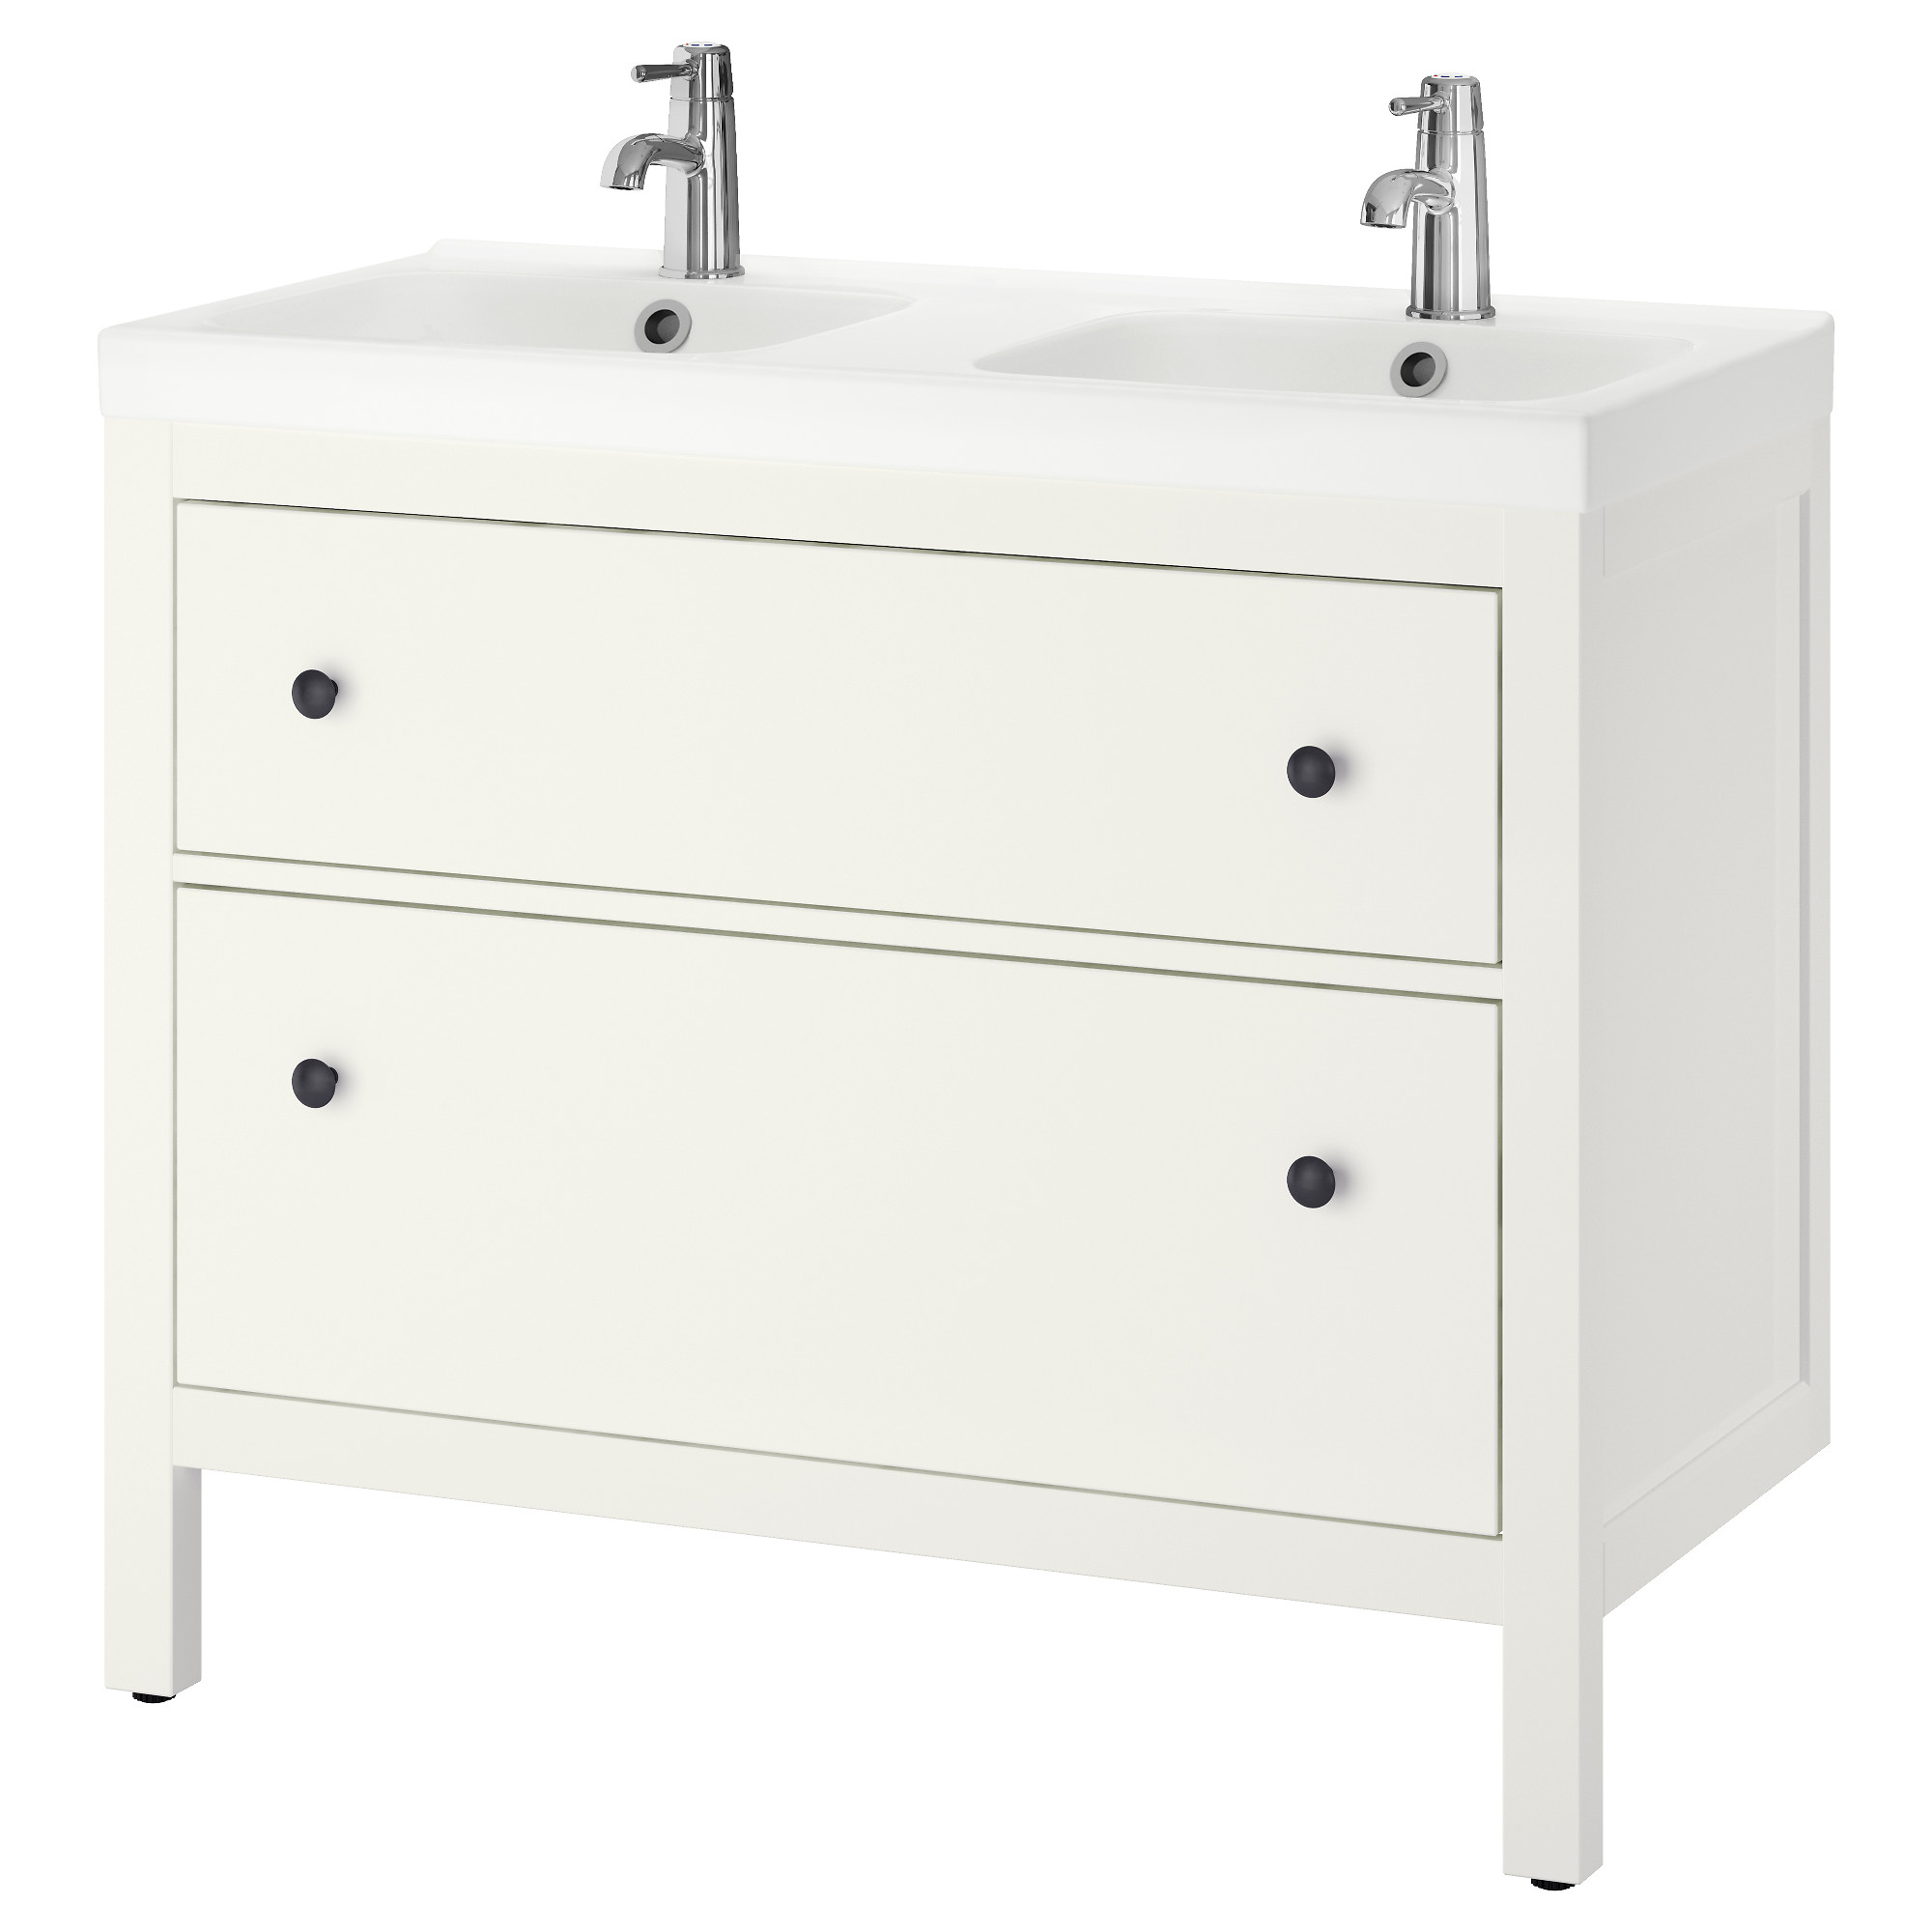 Bathroom Sinks Ikea bathroom sink cabinets - ikea